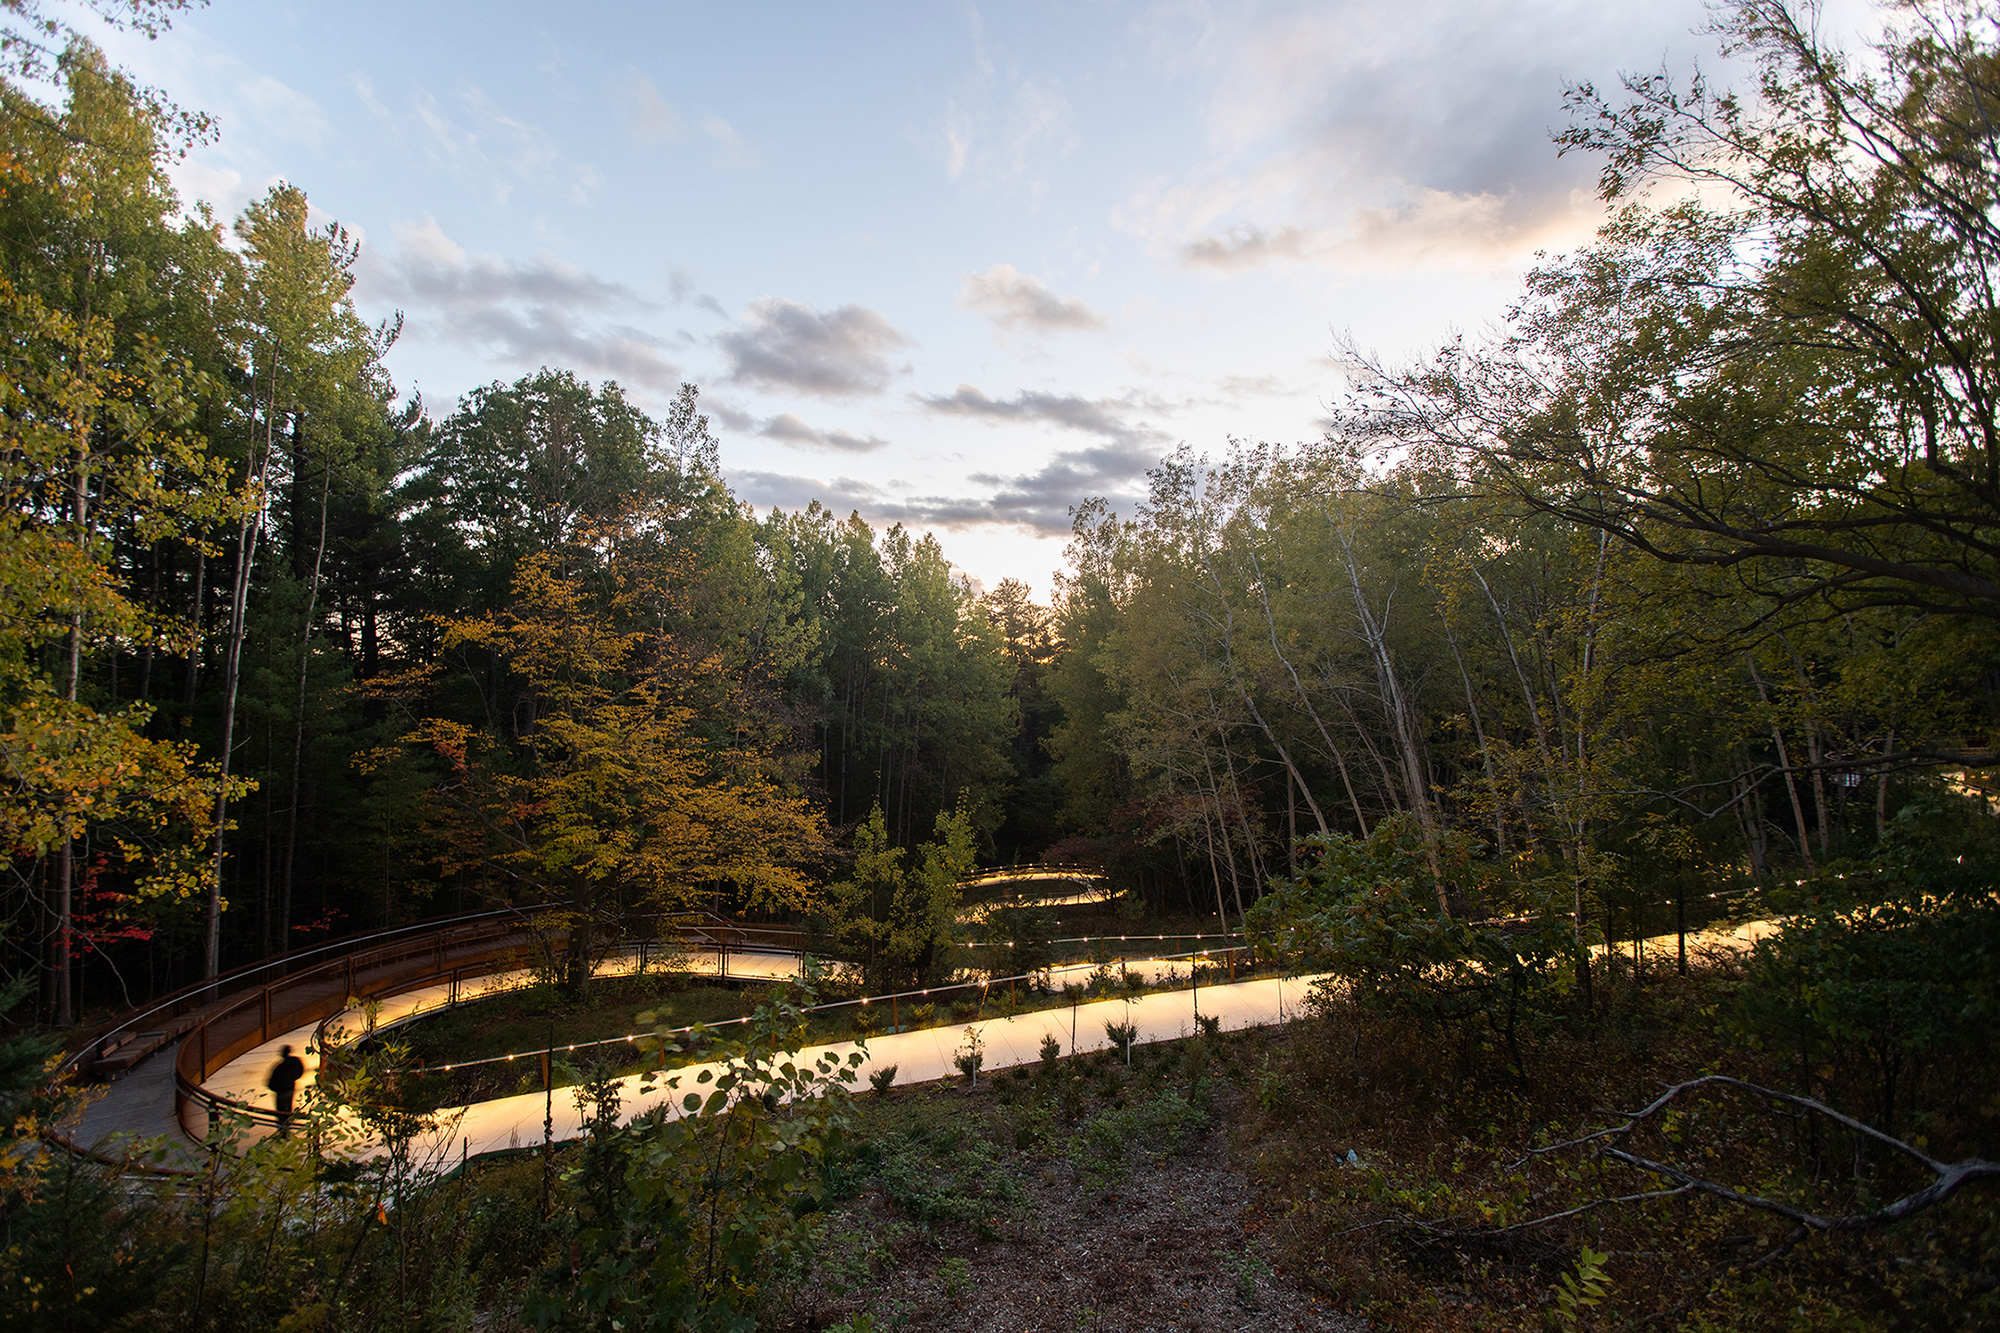 A loop of the UTSC trail through forested area